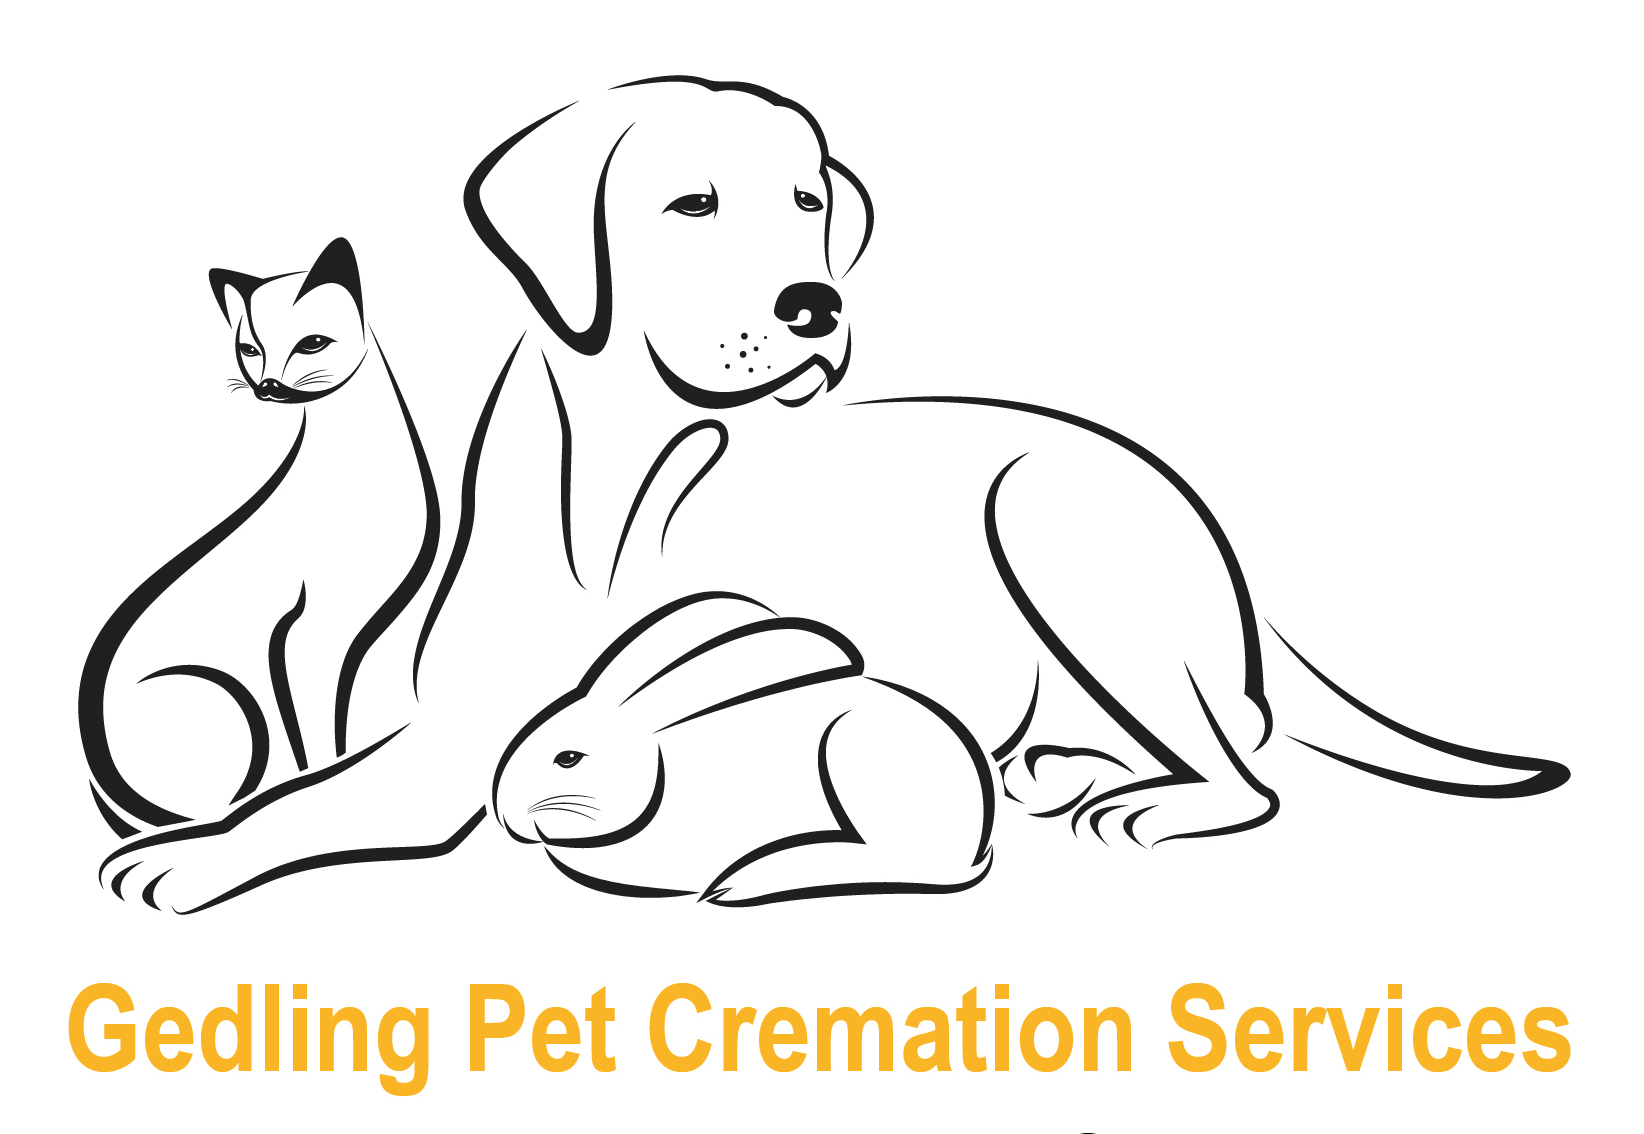 Gedling Pet Cremation